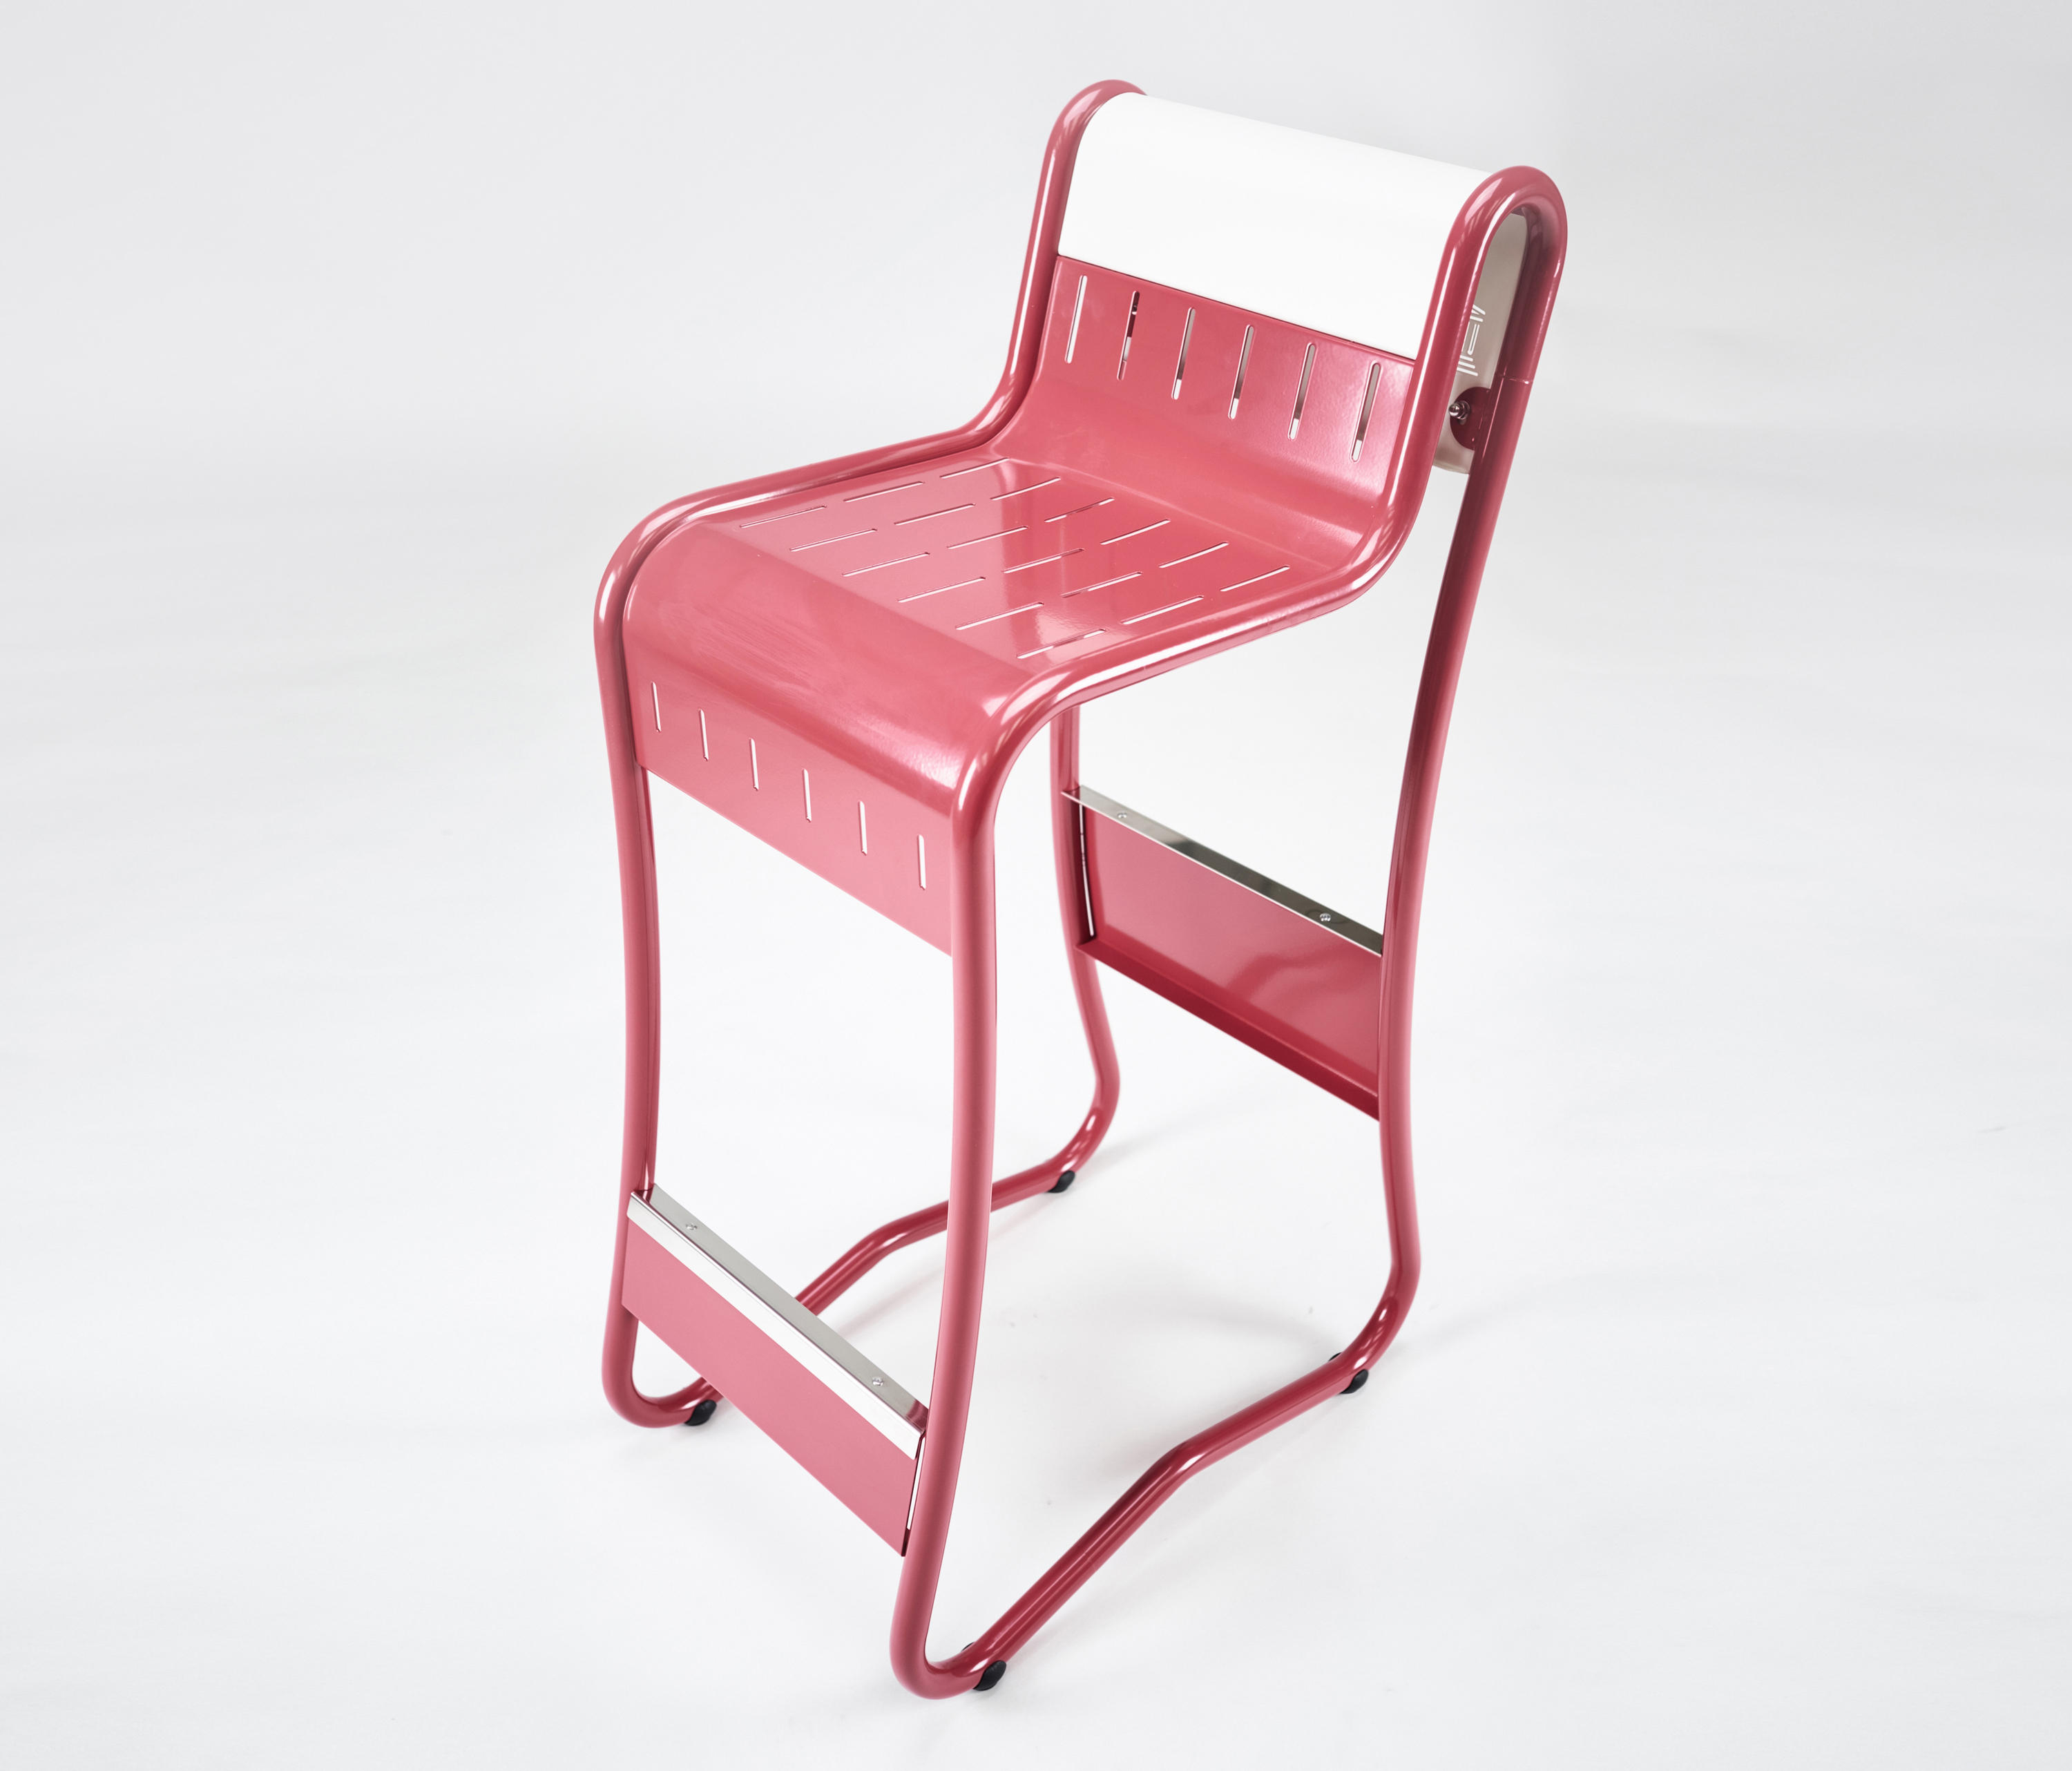 Barhocker Pink Detroit Barhocker Von Tf Urban Architonic